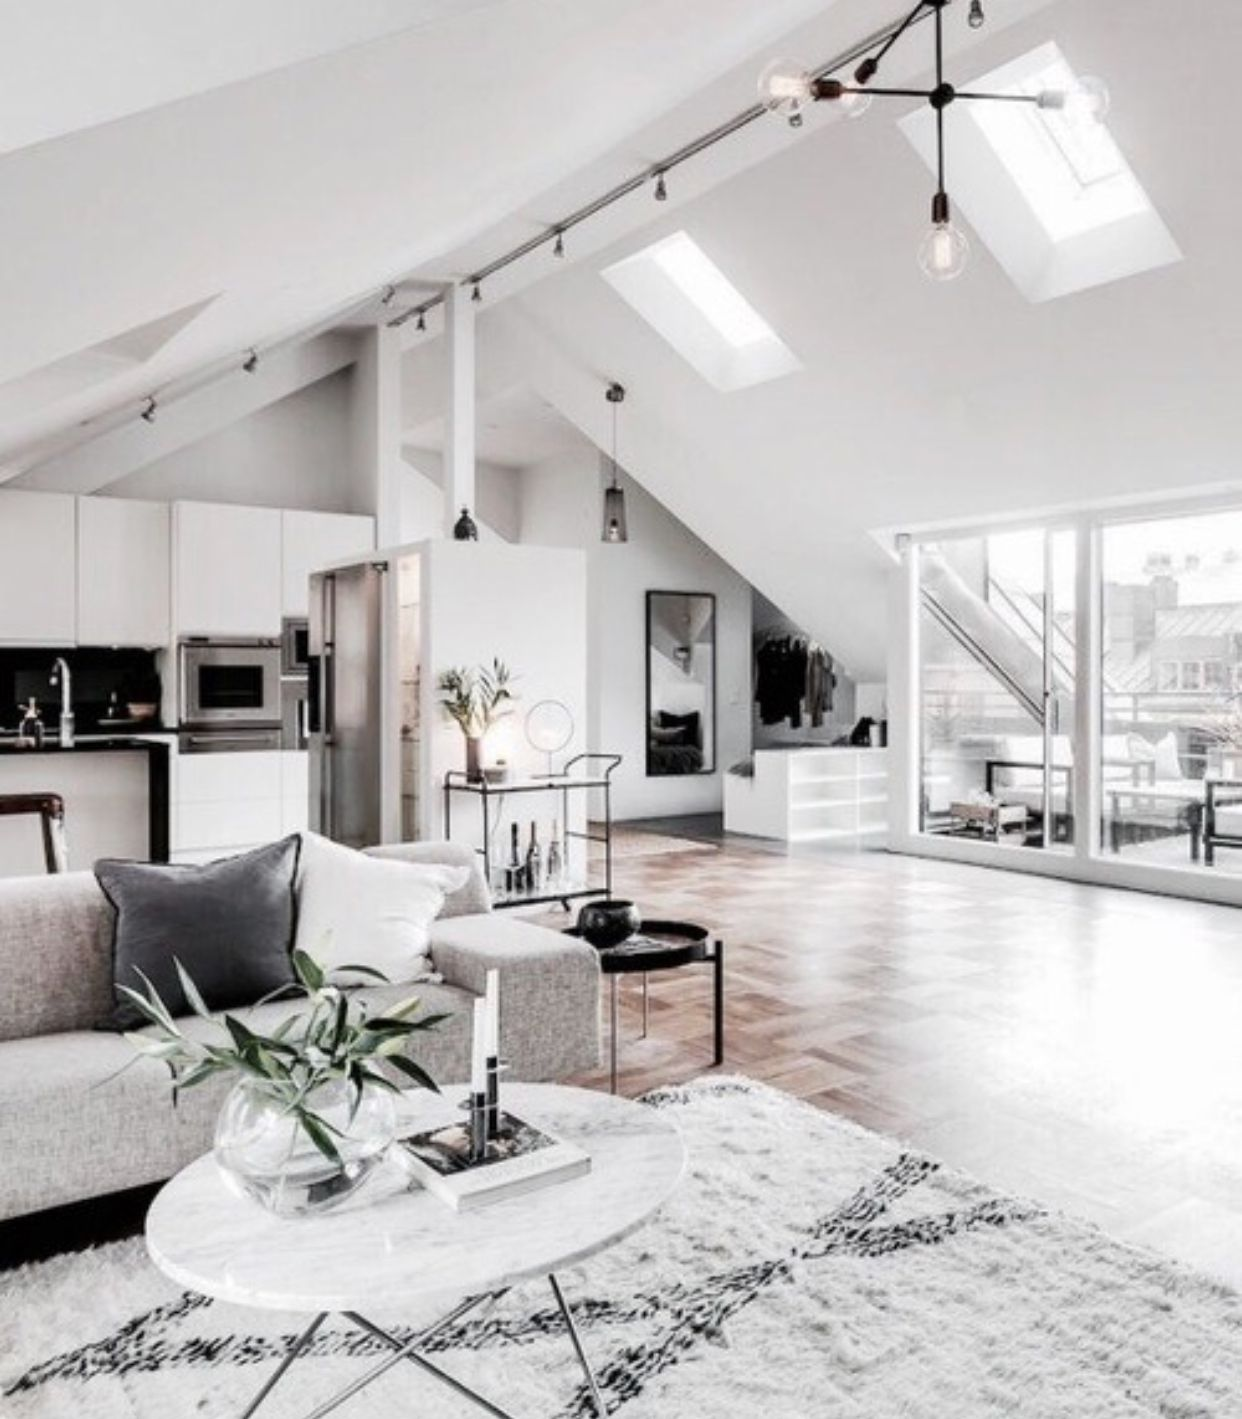 Pin by Edward-Michael Muna on Ideas for the House | Pinterest ...